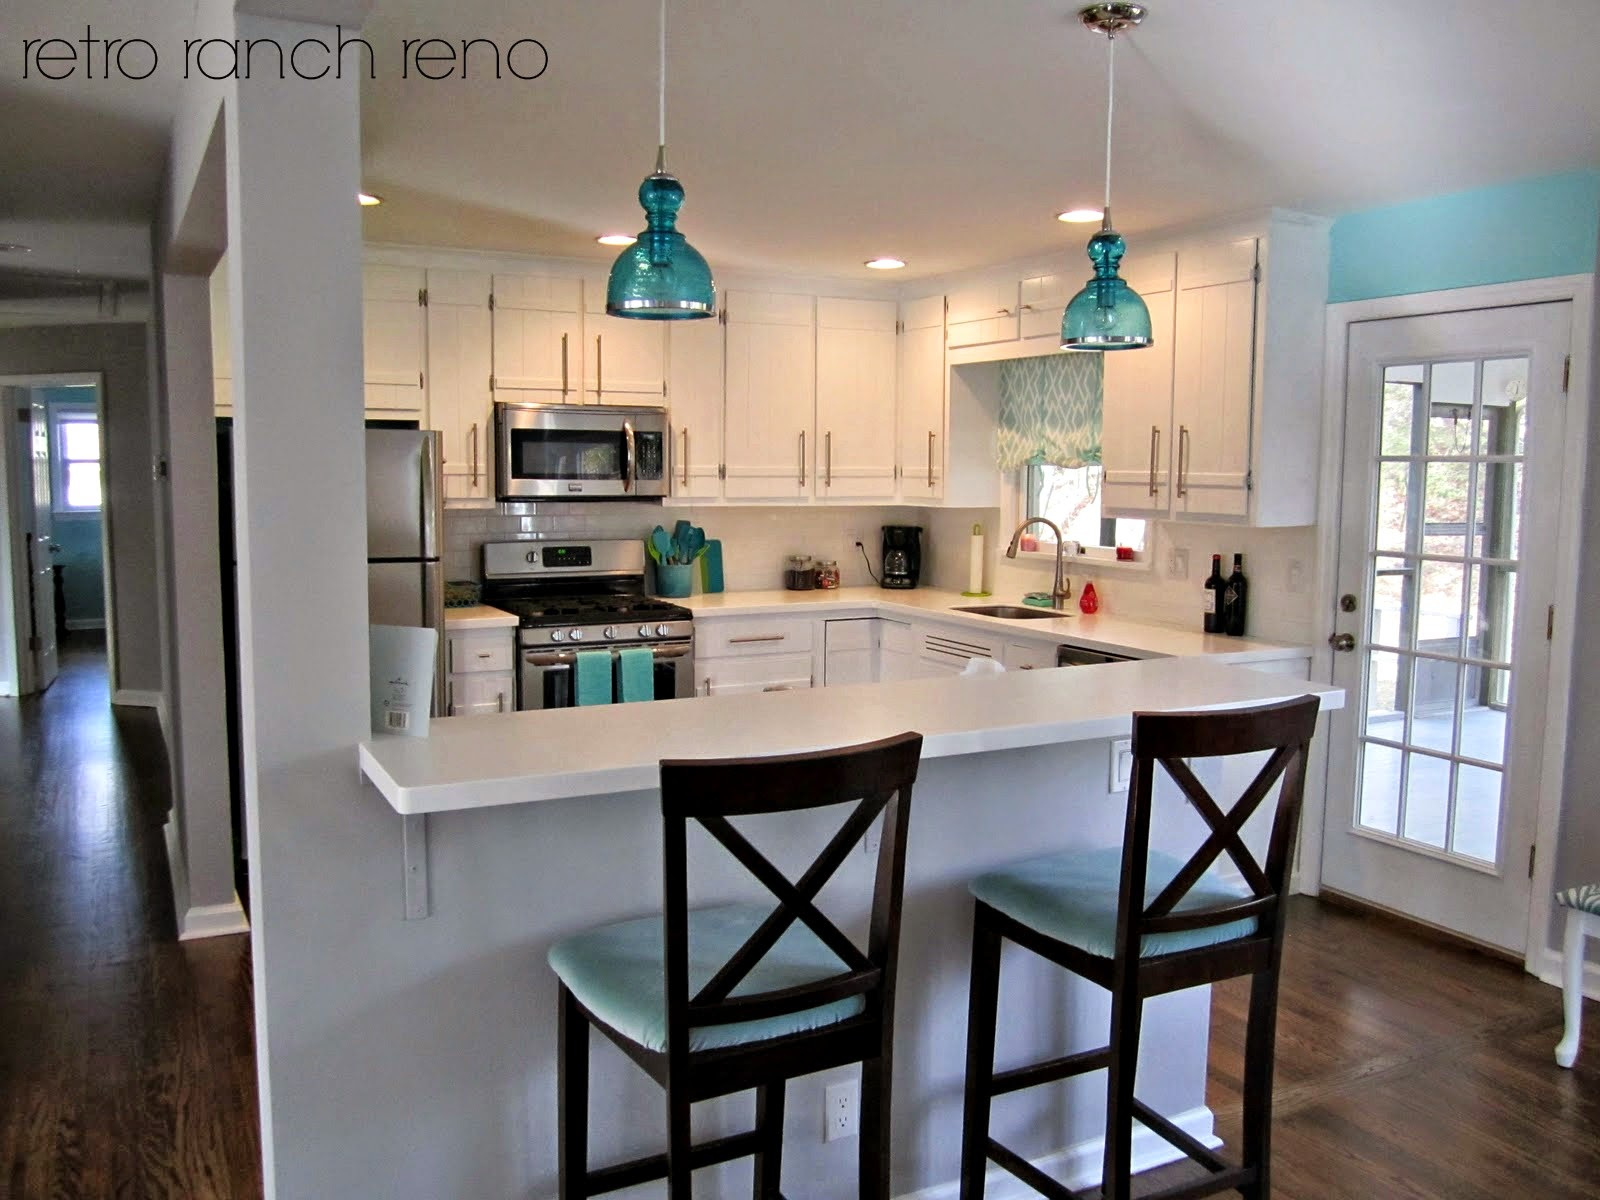 Retro Ranch Reno Kitchen Dreaming With a Little Help